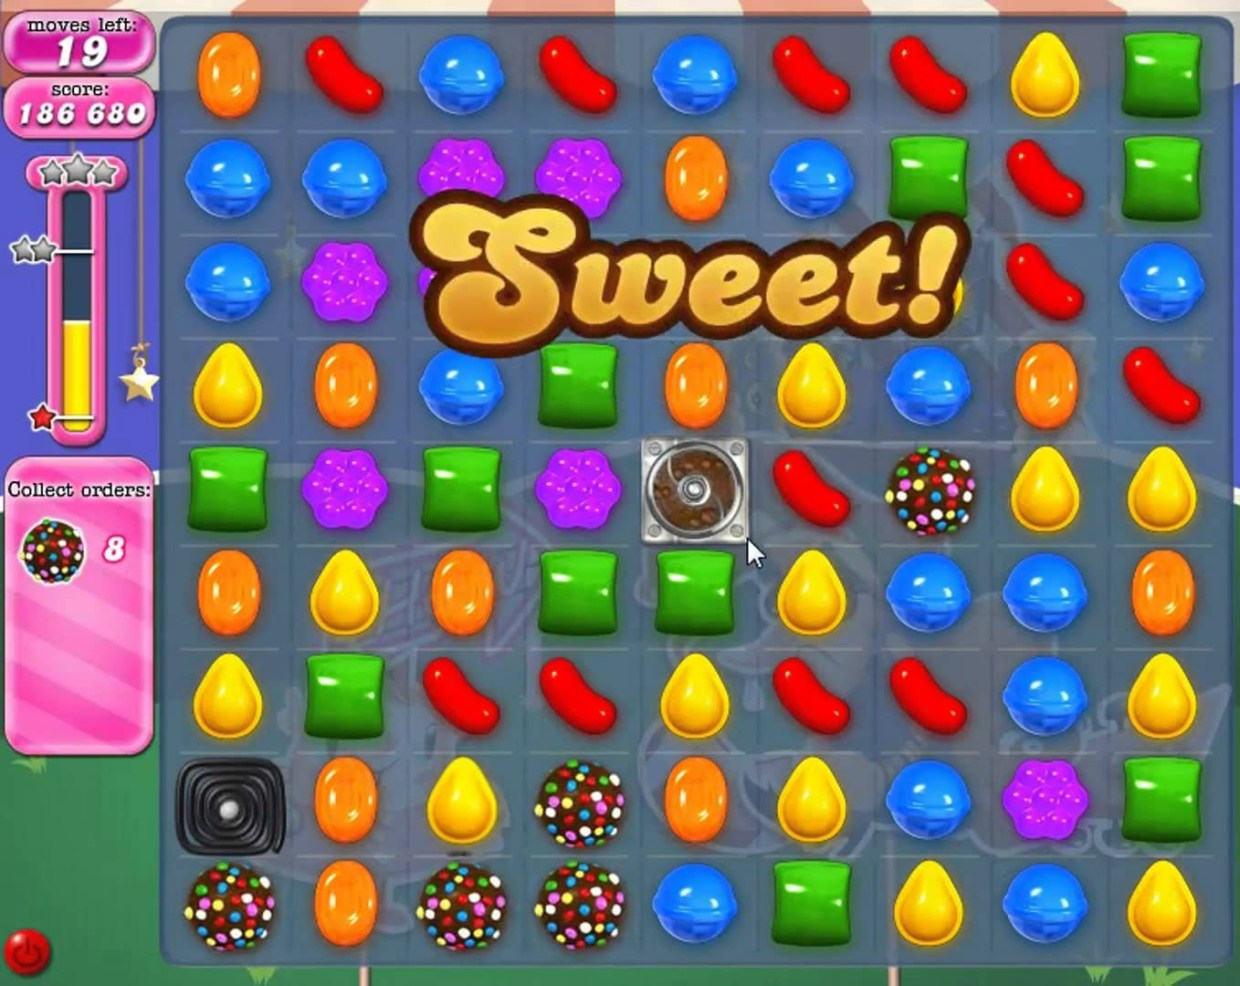 9 things I learned about life from playing Candy Crush.